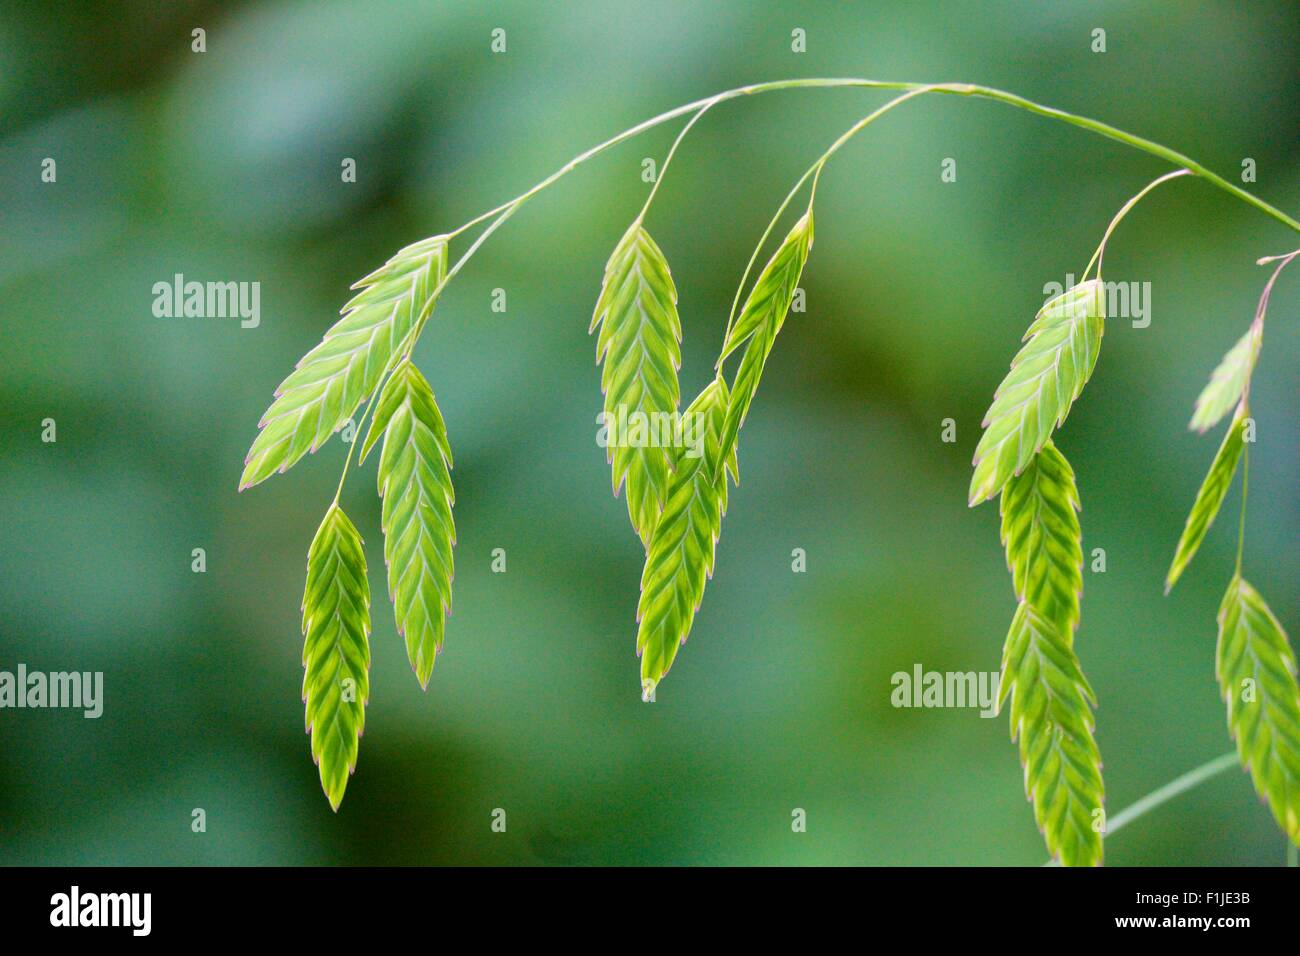 northern-sea-oats-chasmanthium-latifoliu